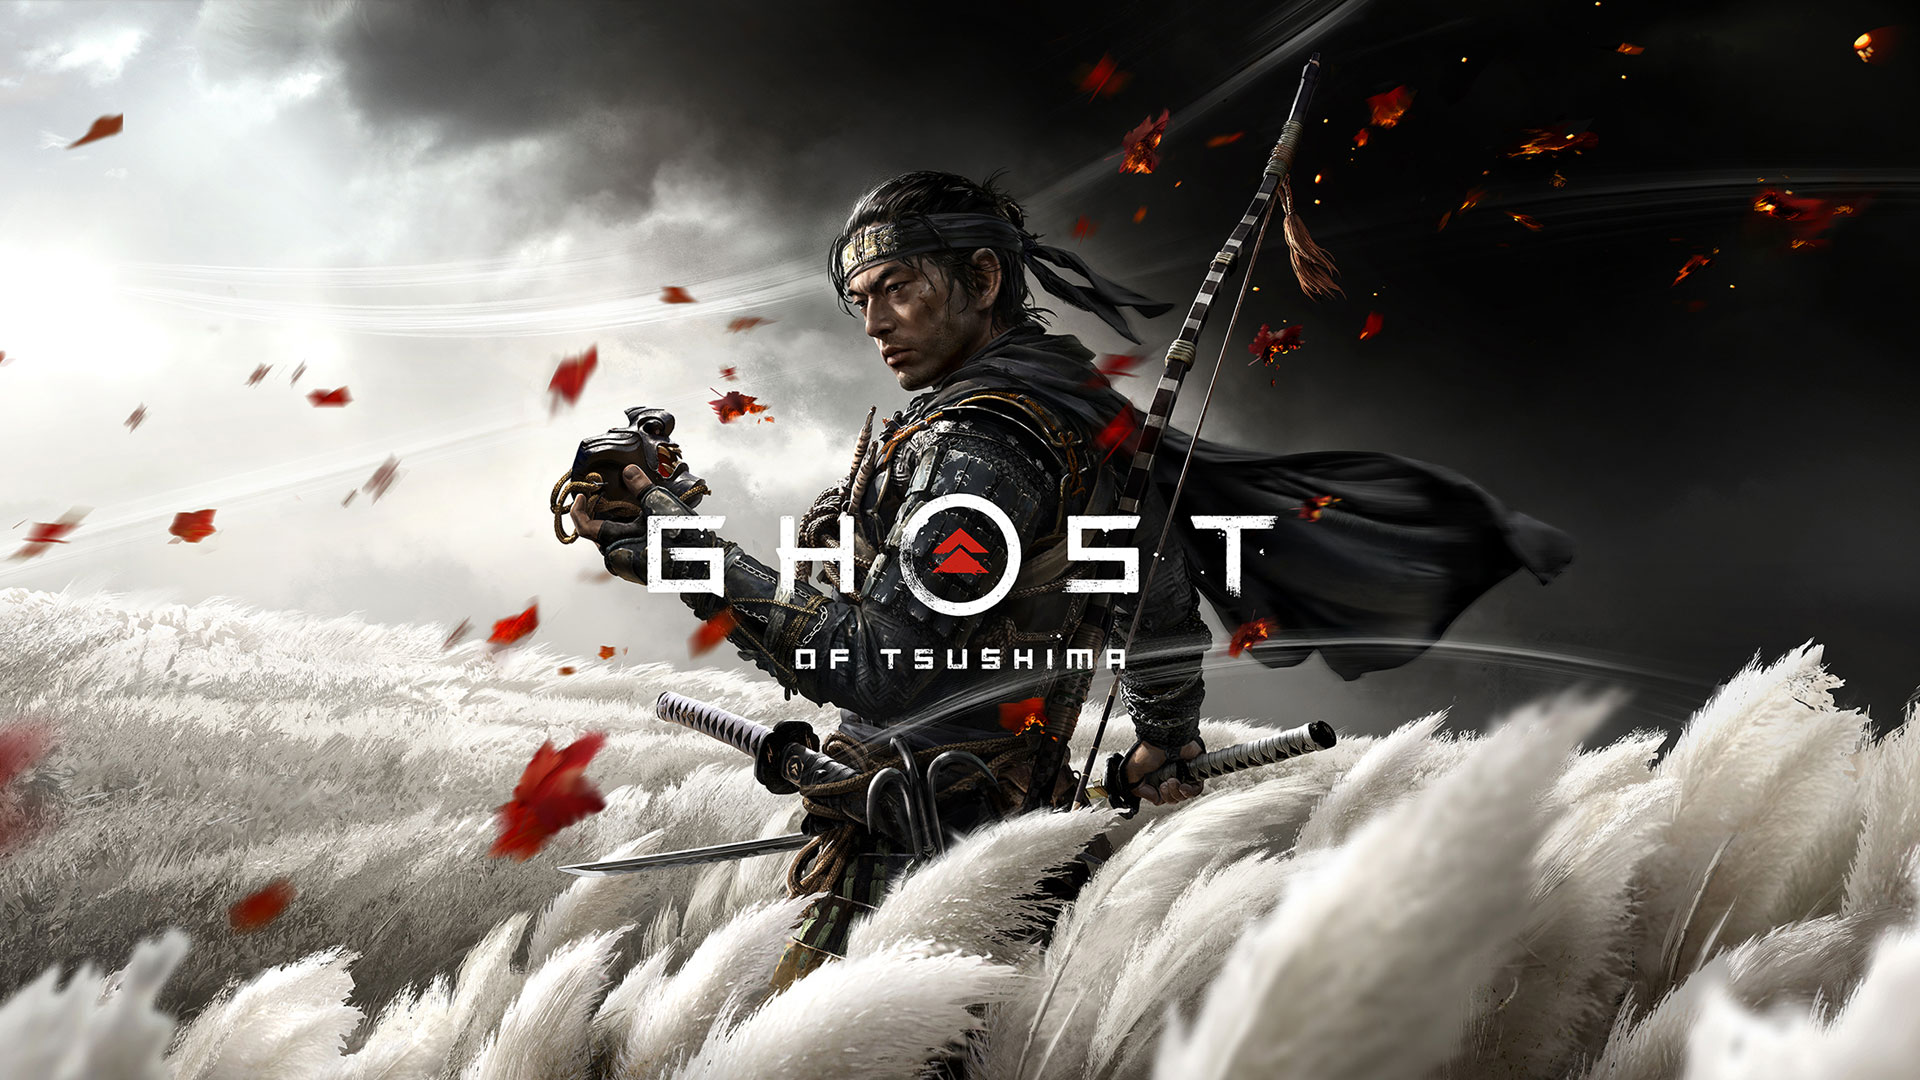 Ghost Of Tsushima Wallpapers Hd Desktop Mobile Backgrounds Pro Game Guides